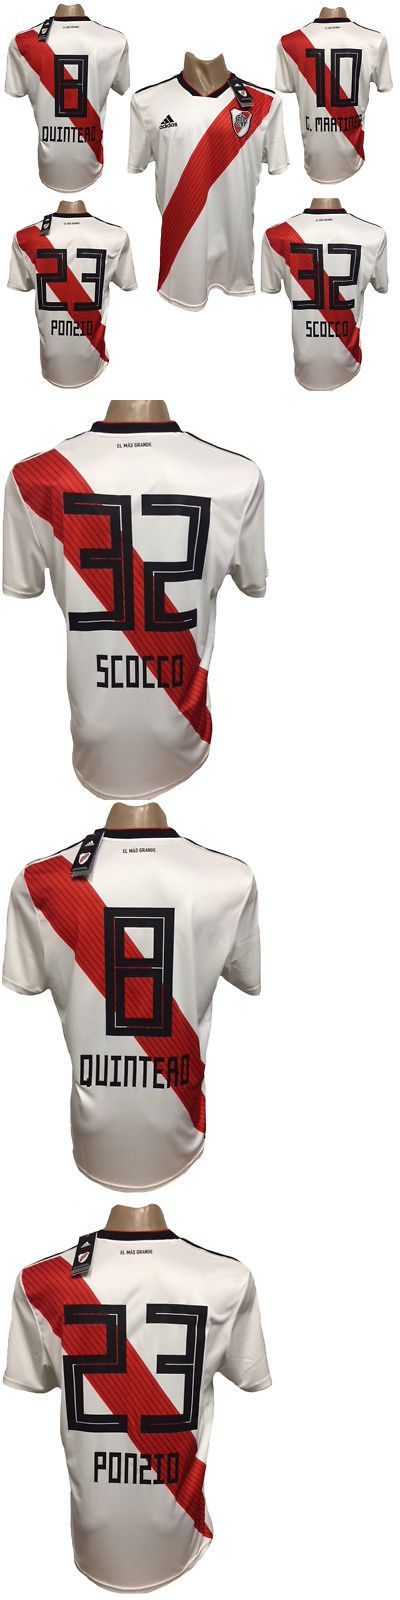 977022d523d RIVER PLATE HOME SOCCER JERSEY 2018-2019 ALL SIZES and PLAYERS Men